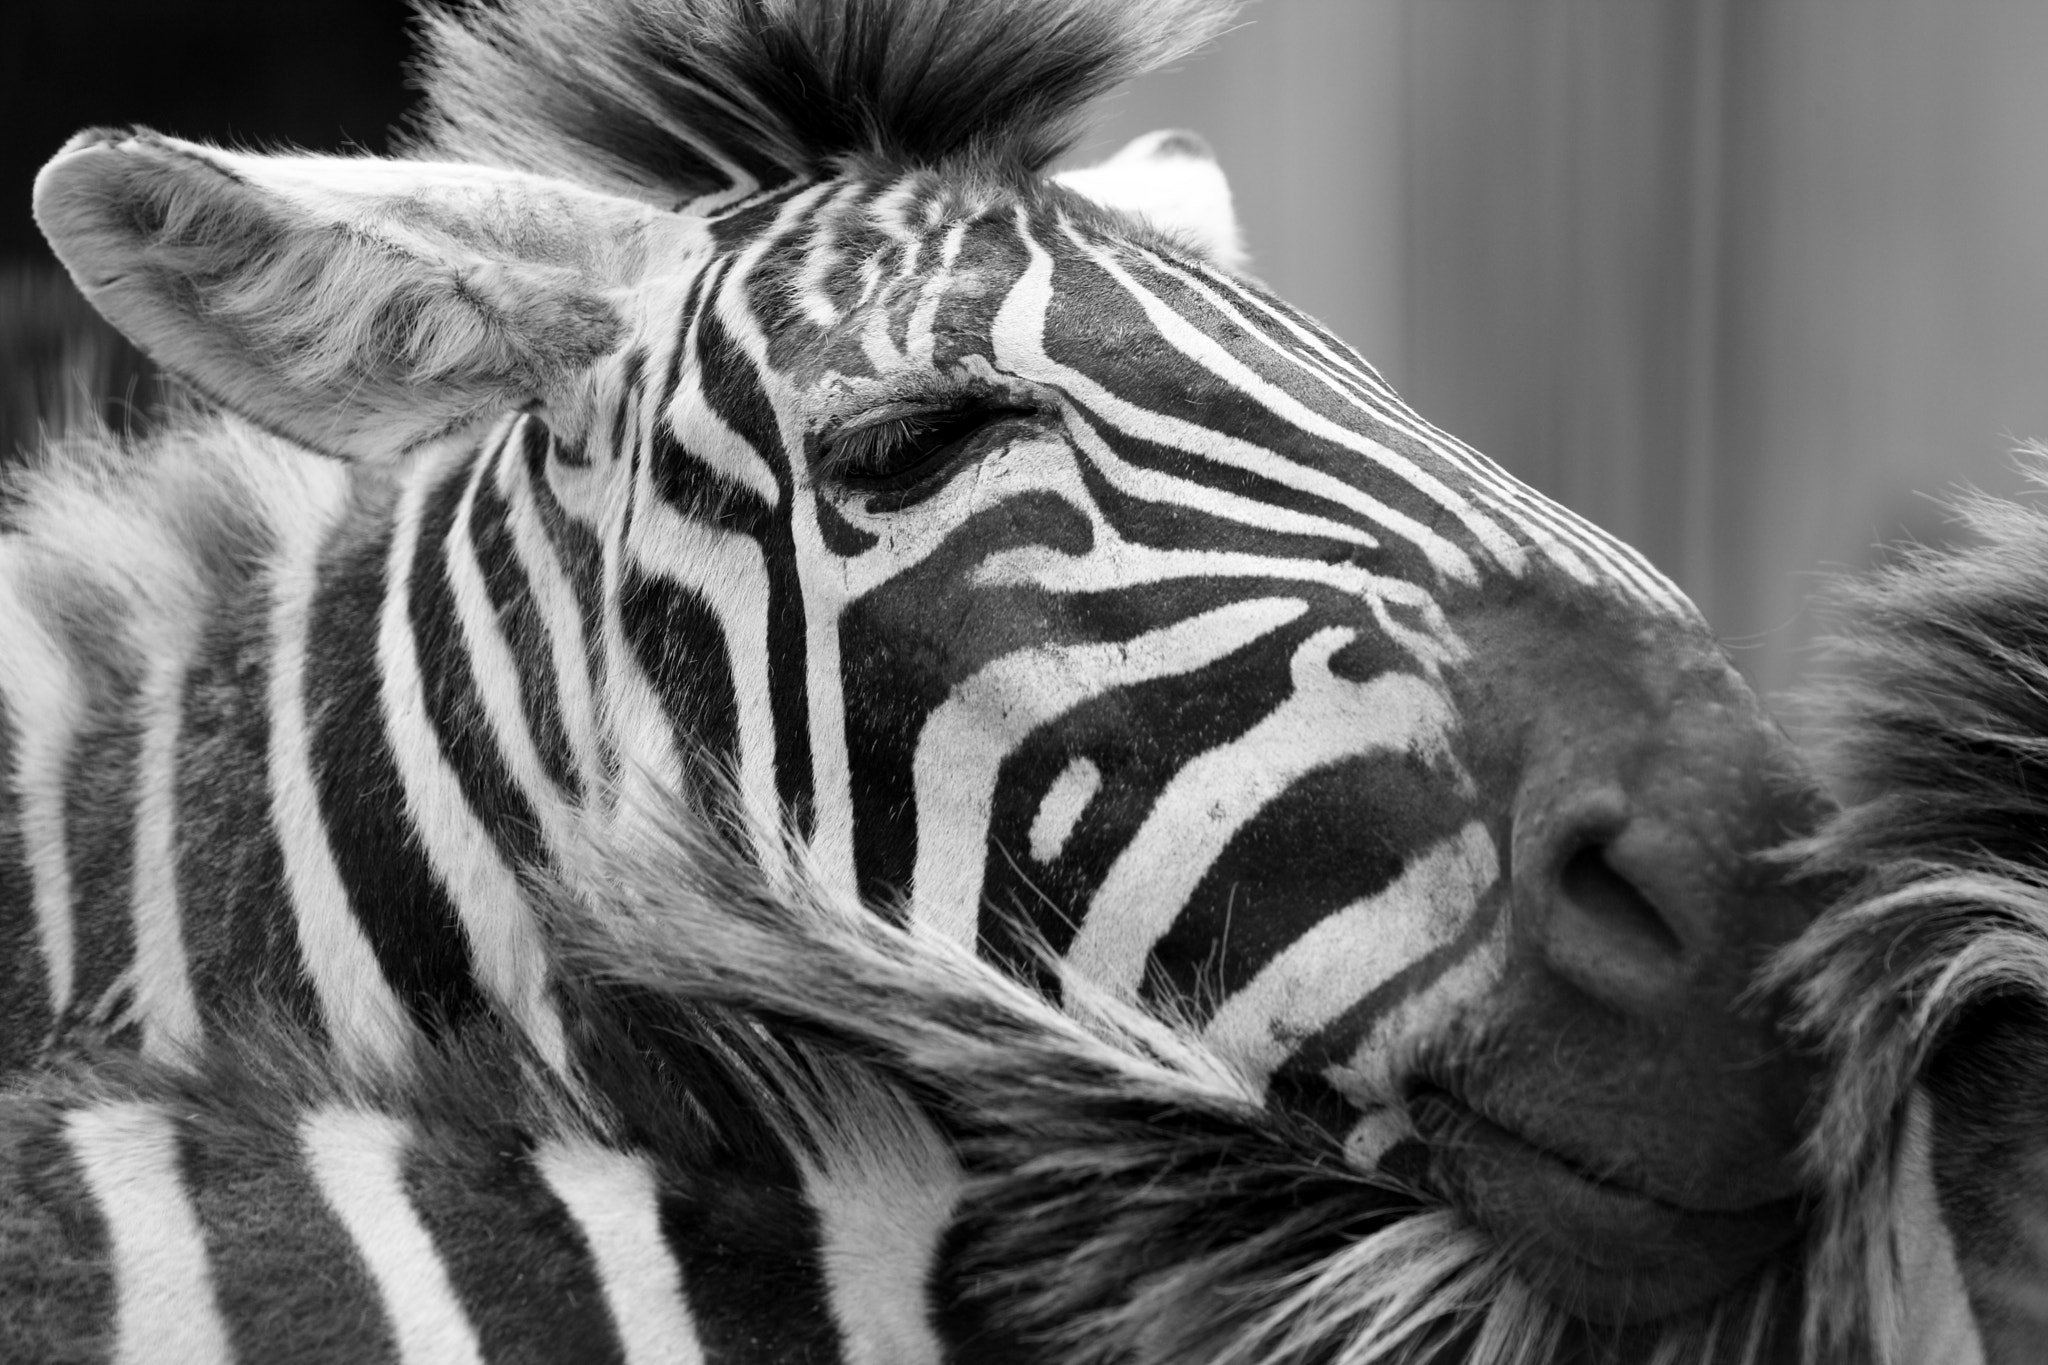 Photograph Zebra by Ken Shimo on 500px